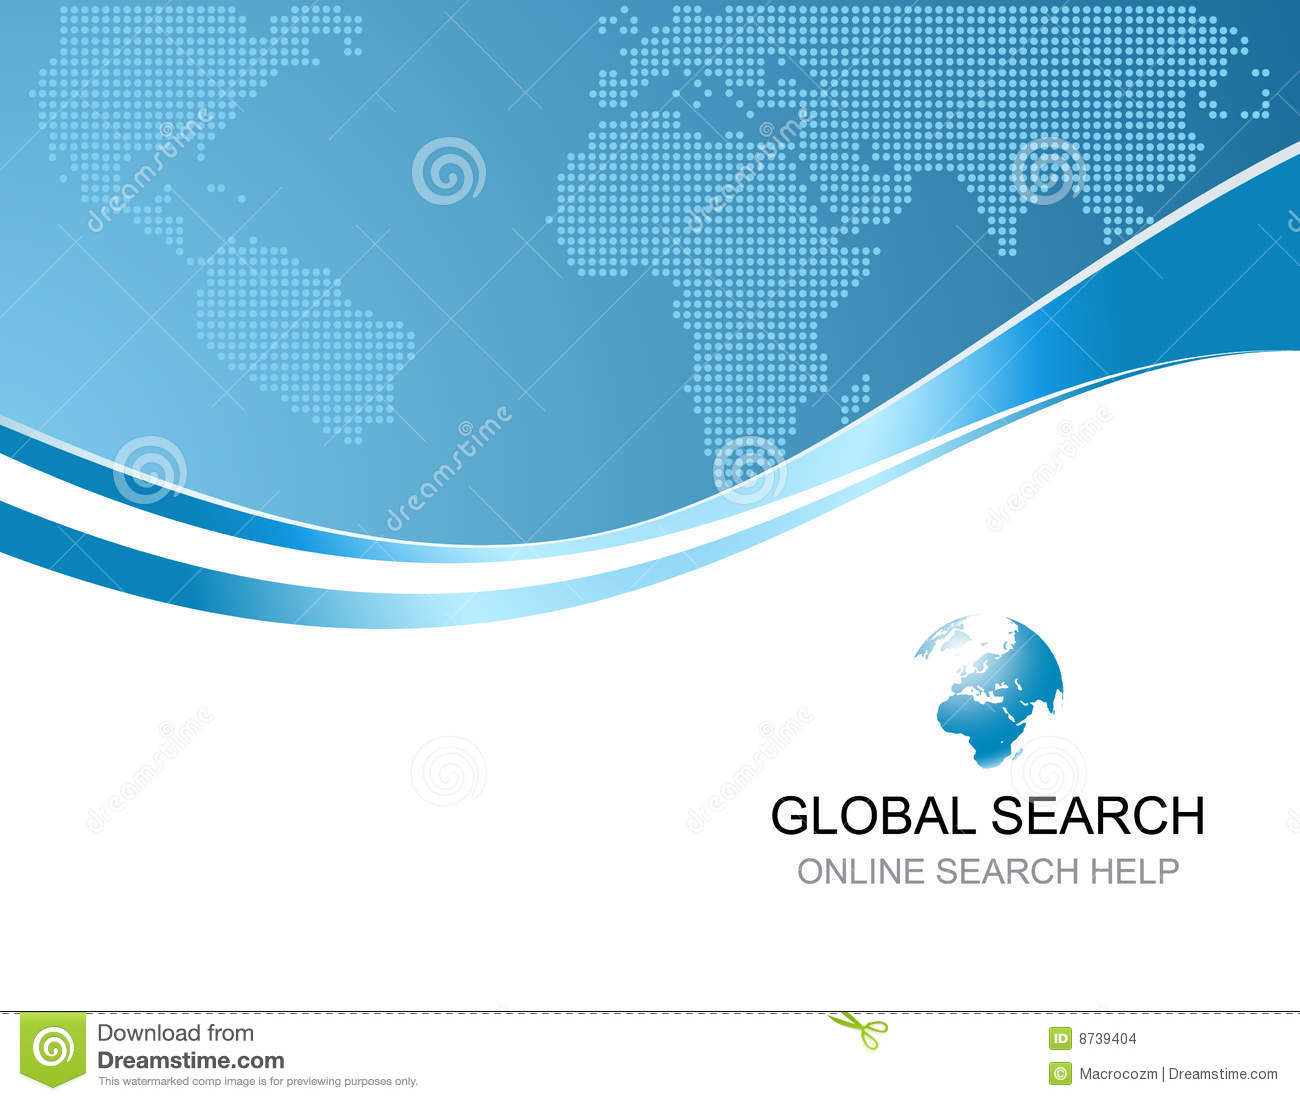 ... Background With Logo Of Global Search Stock Images - Image: 8739404: www.dreamstime.com/stock-images-corporate-background-logo-global...